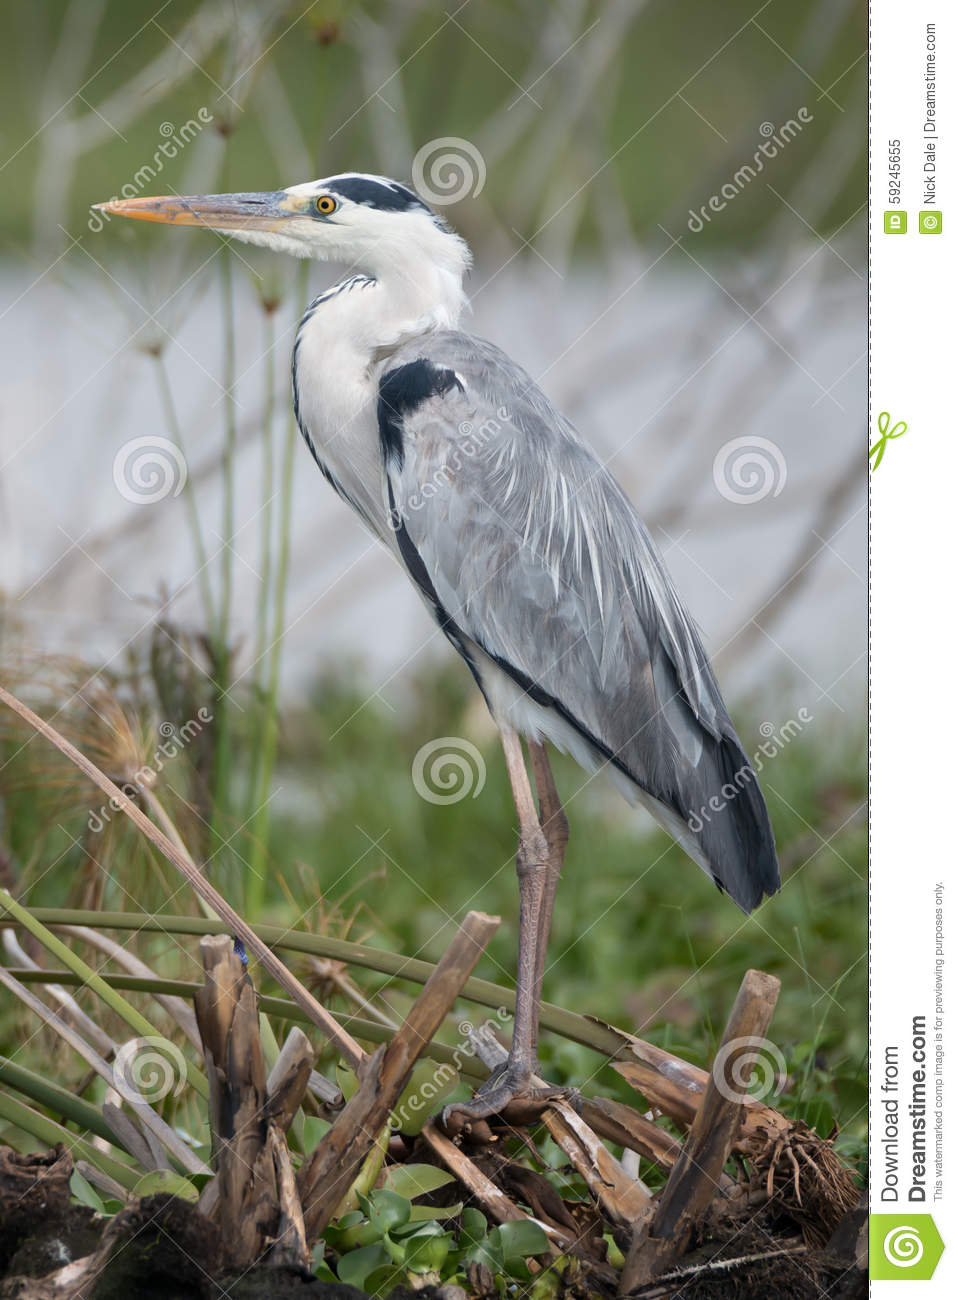 heron lake black singles Grey heron, ardea cinerea, single bird on ice black crowned night heron in the lake at macarthur park in los search results for heron and lake stock photos.